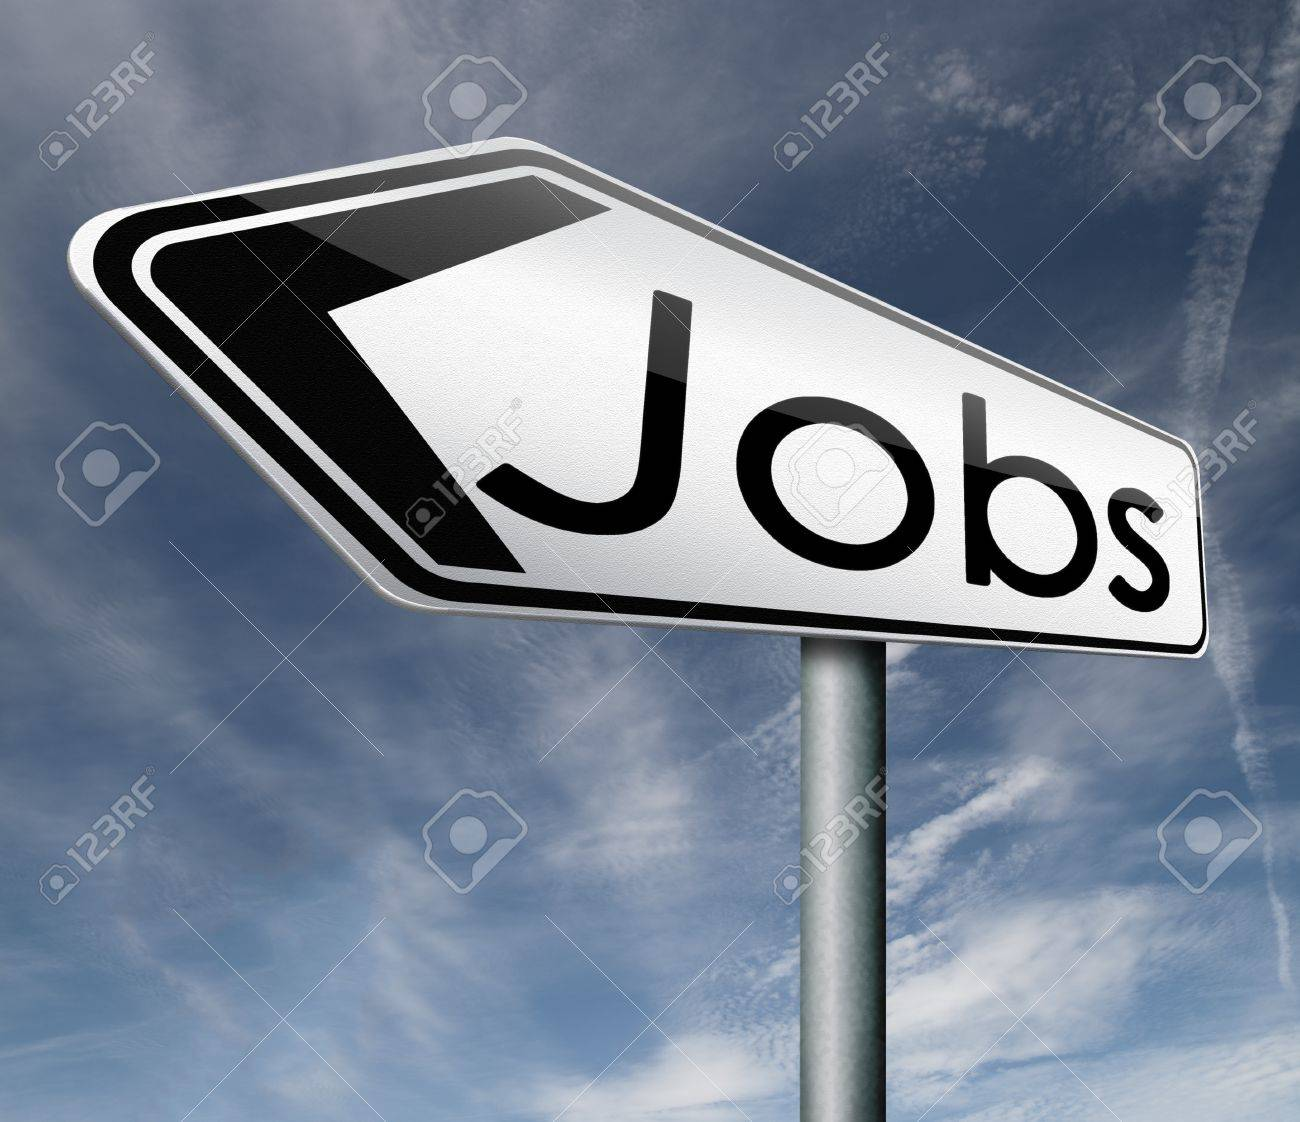 job search vacancy for jobs online job application help wanted stock photo job search vacancy for jobs online job application help wanted hiring now job sign job button job ad advert advertising